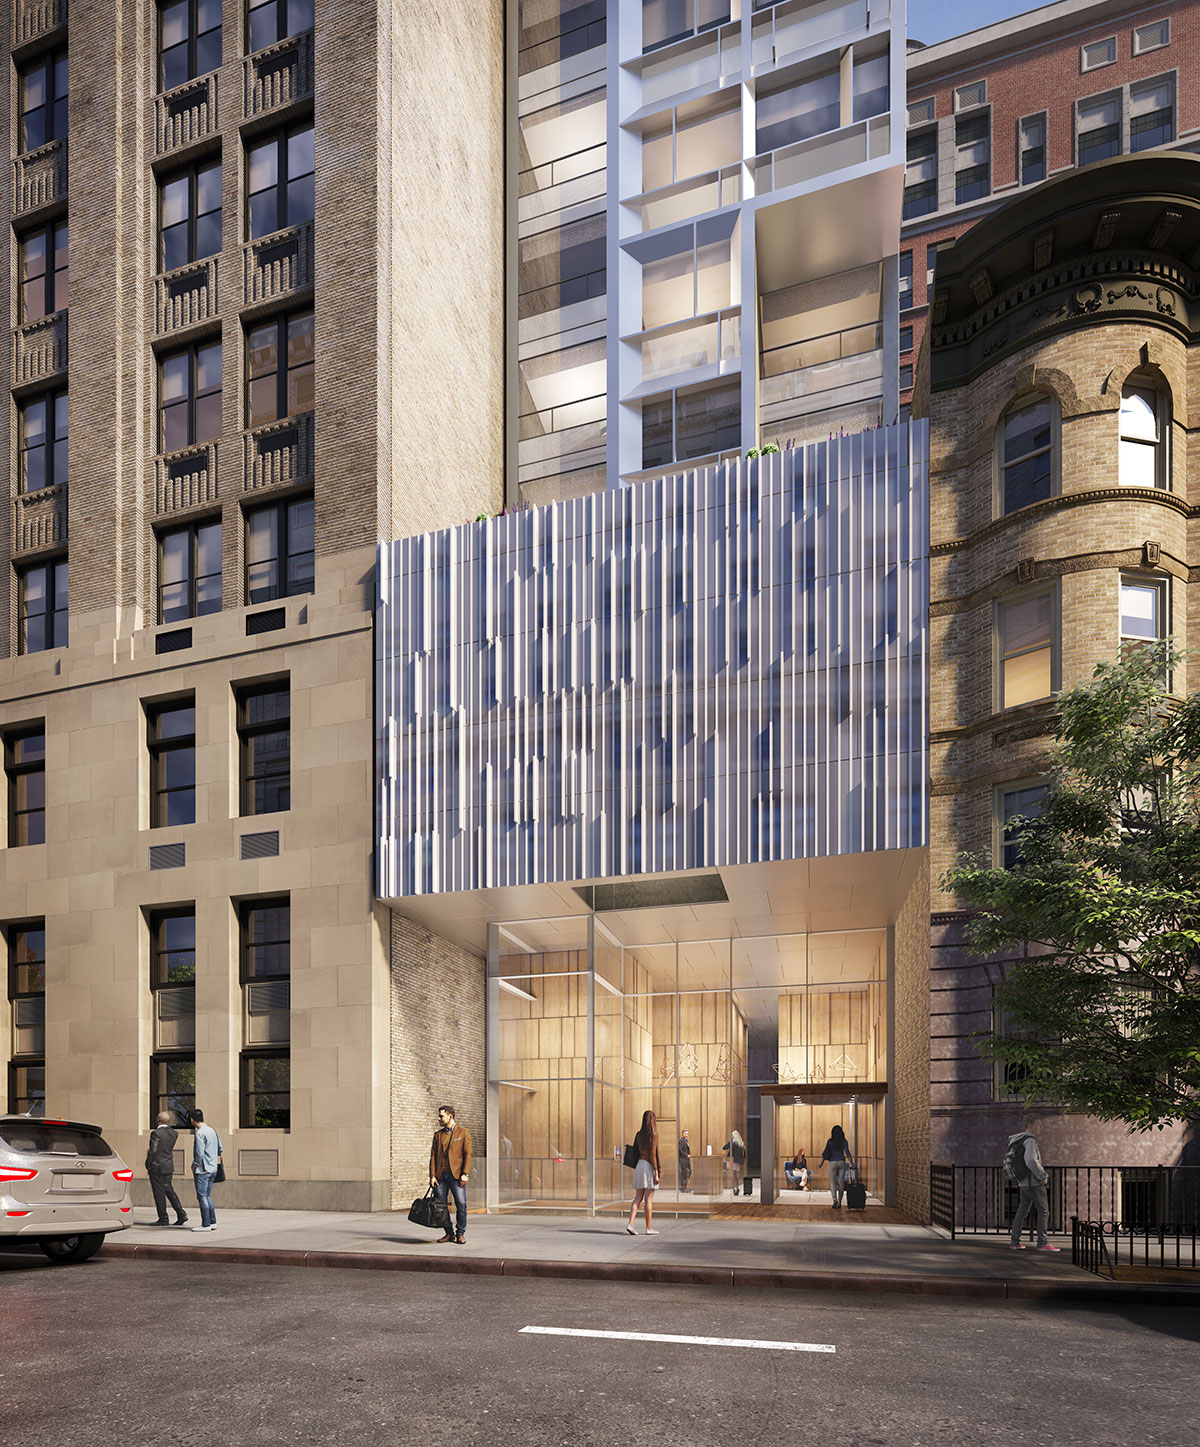 Podium of the Brooklyn Motto Hotel project, a modular hotel tower on Schermerhorn Street in Brooklyn, New York designed by the architecture studio Danny Forster & Architecture